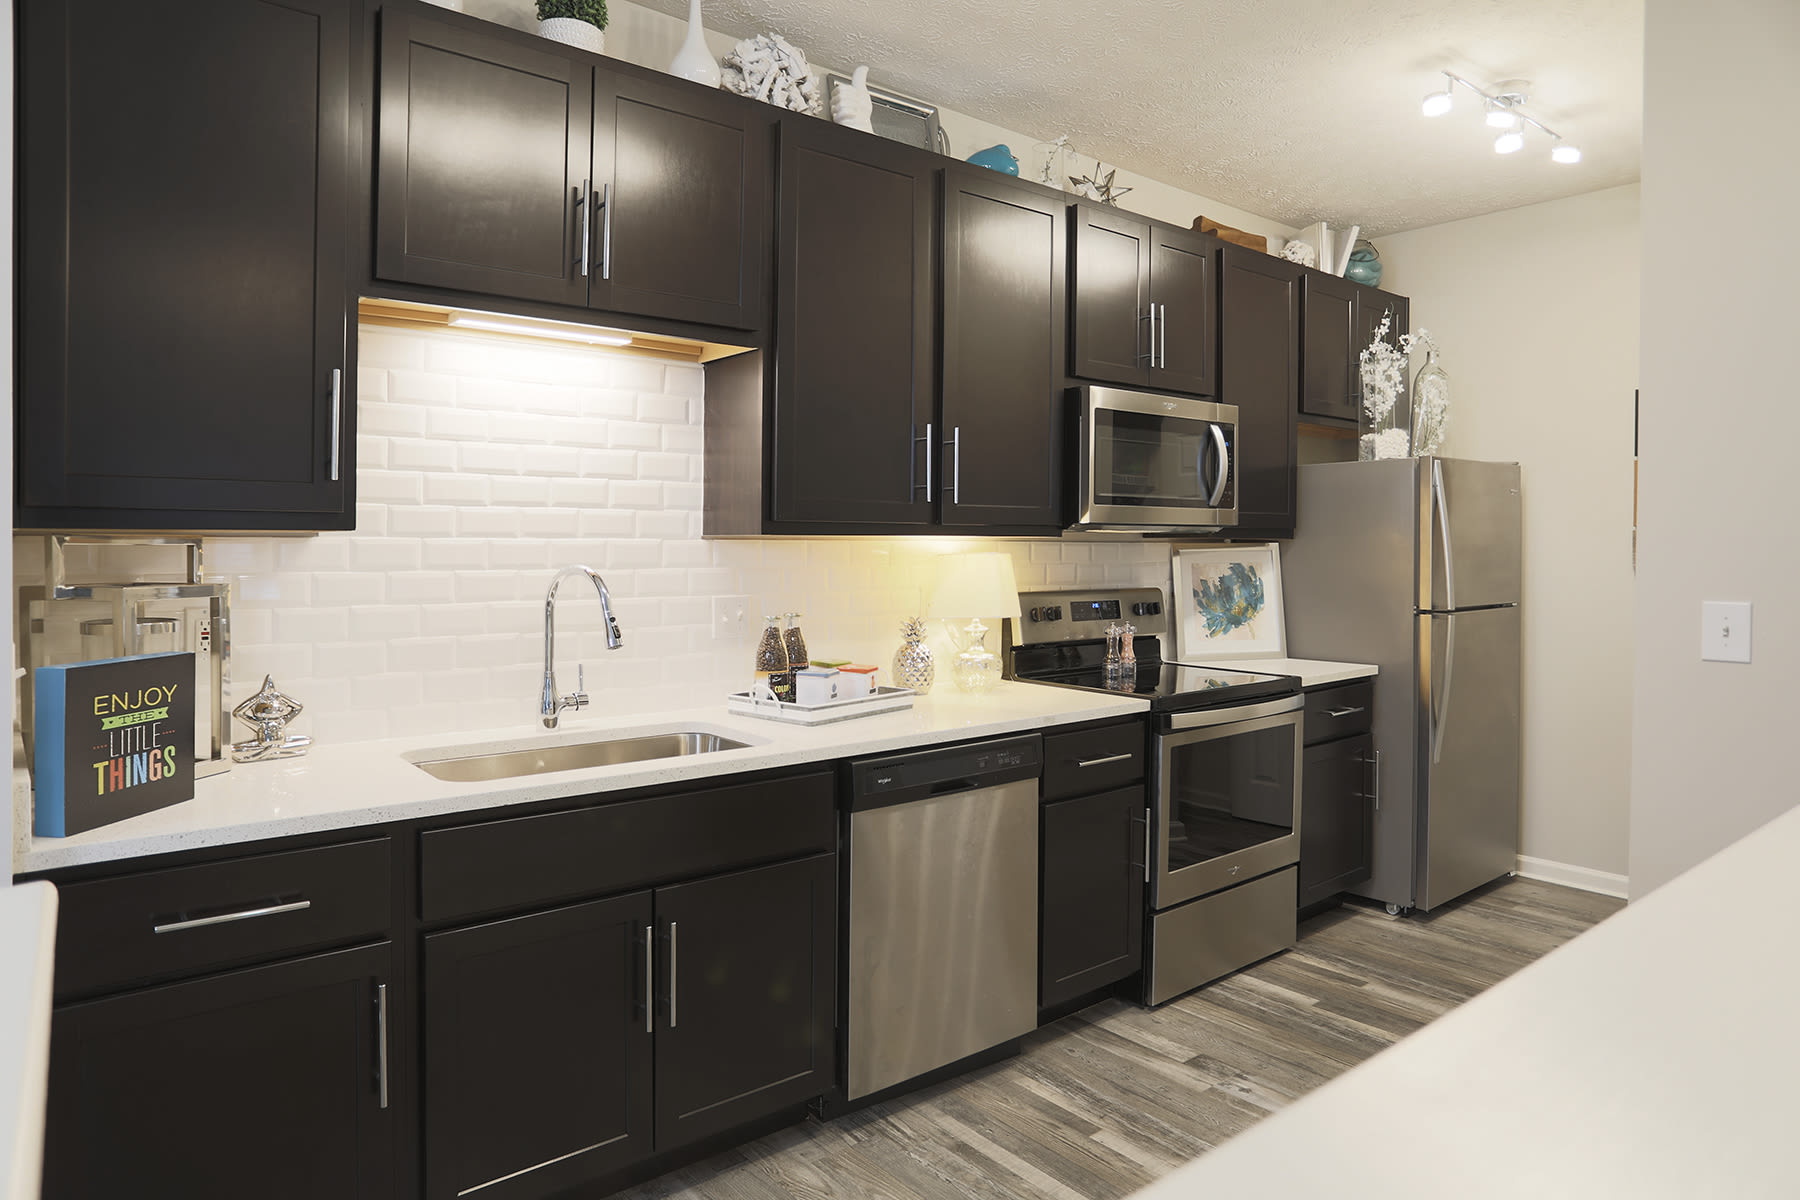 The Landings at Beckett Ridge offers spacious kitchens